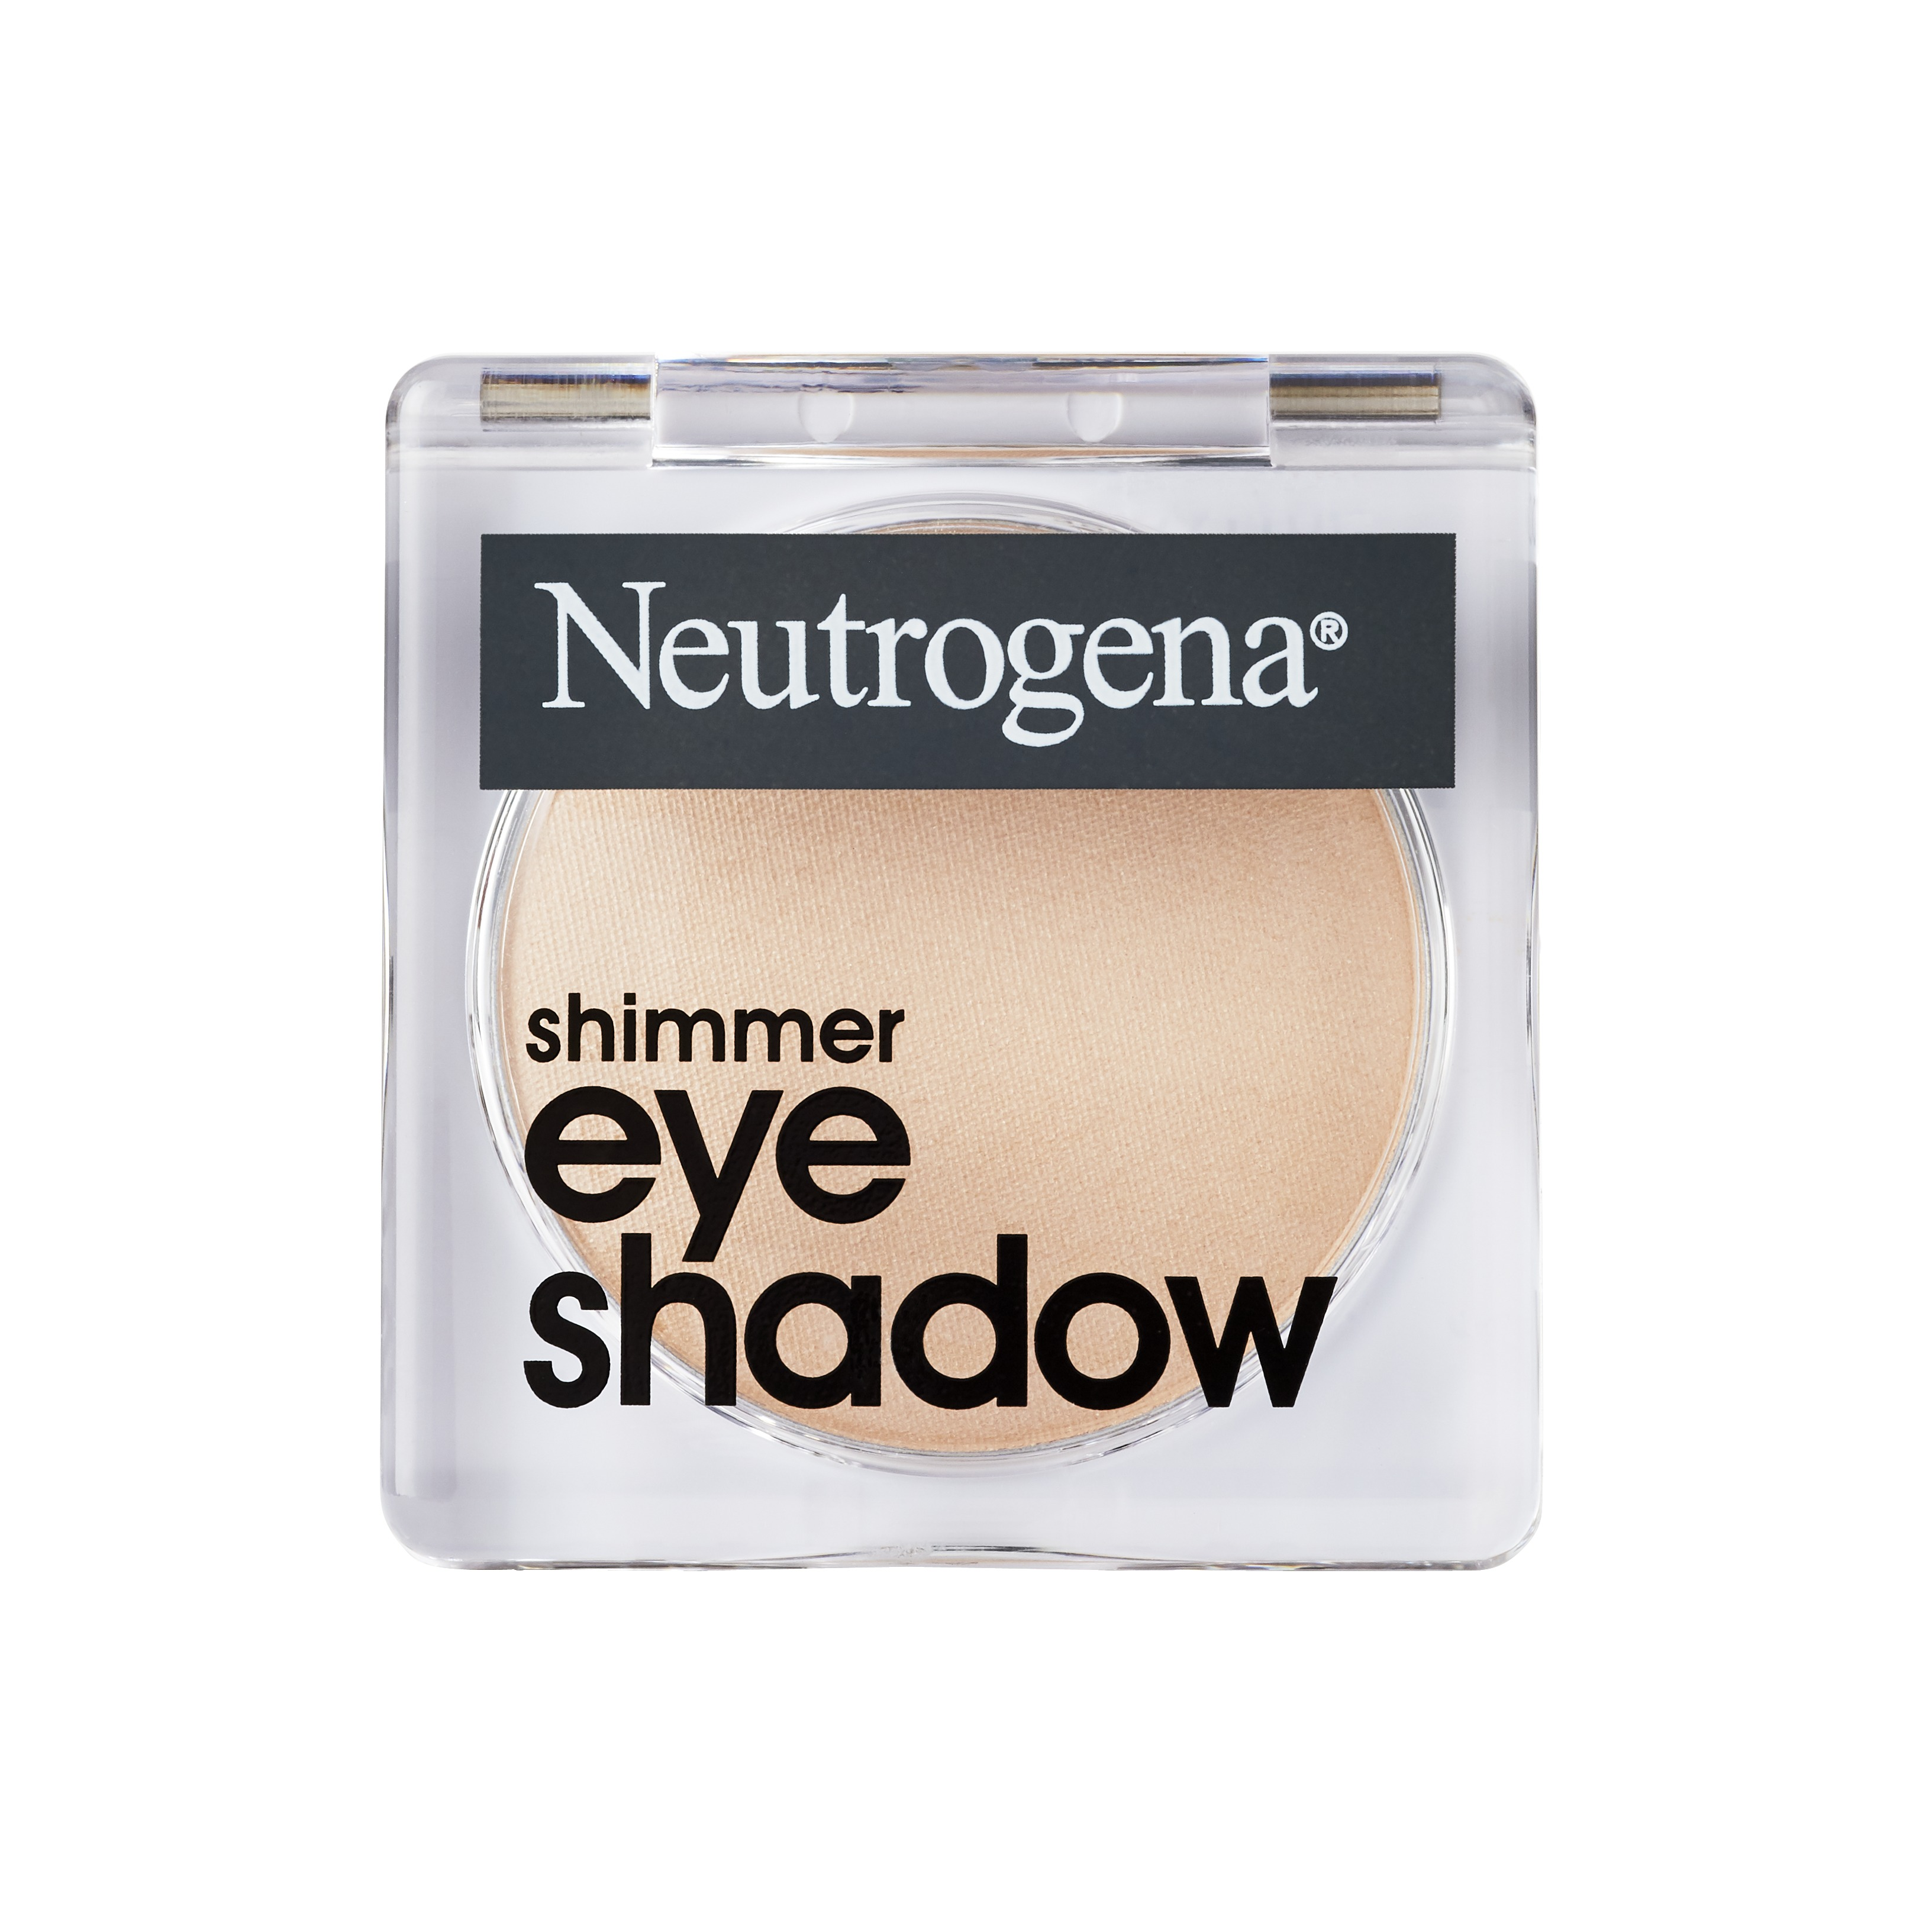 Neutrogena Shimmer Eye Shadow with Vitamin E, Silk Stone, 1.0 oz